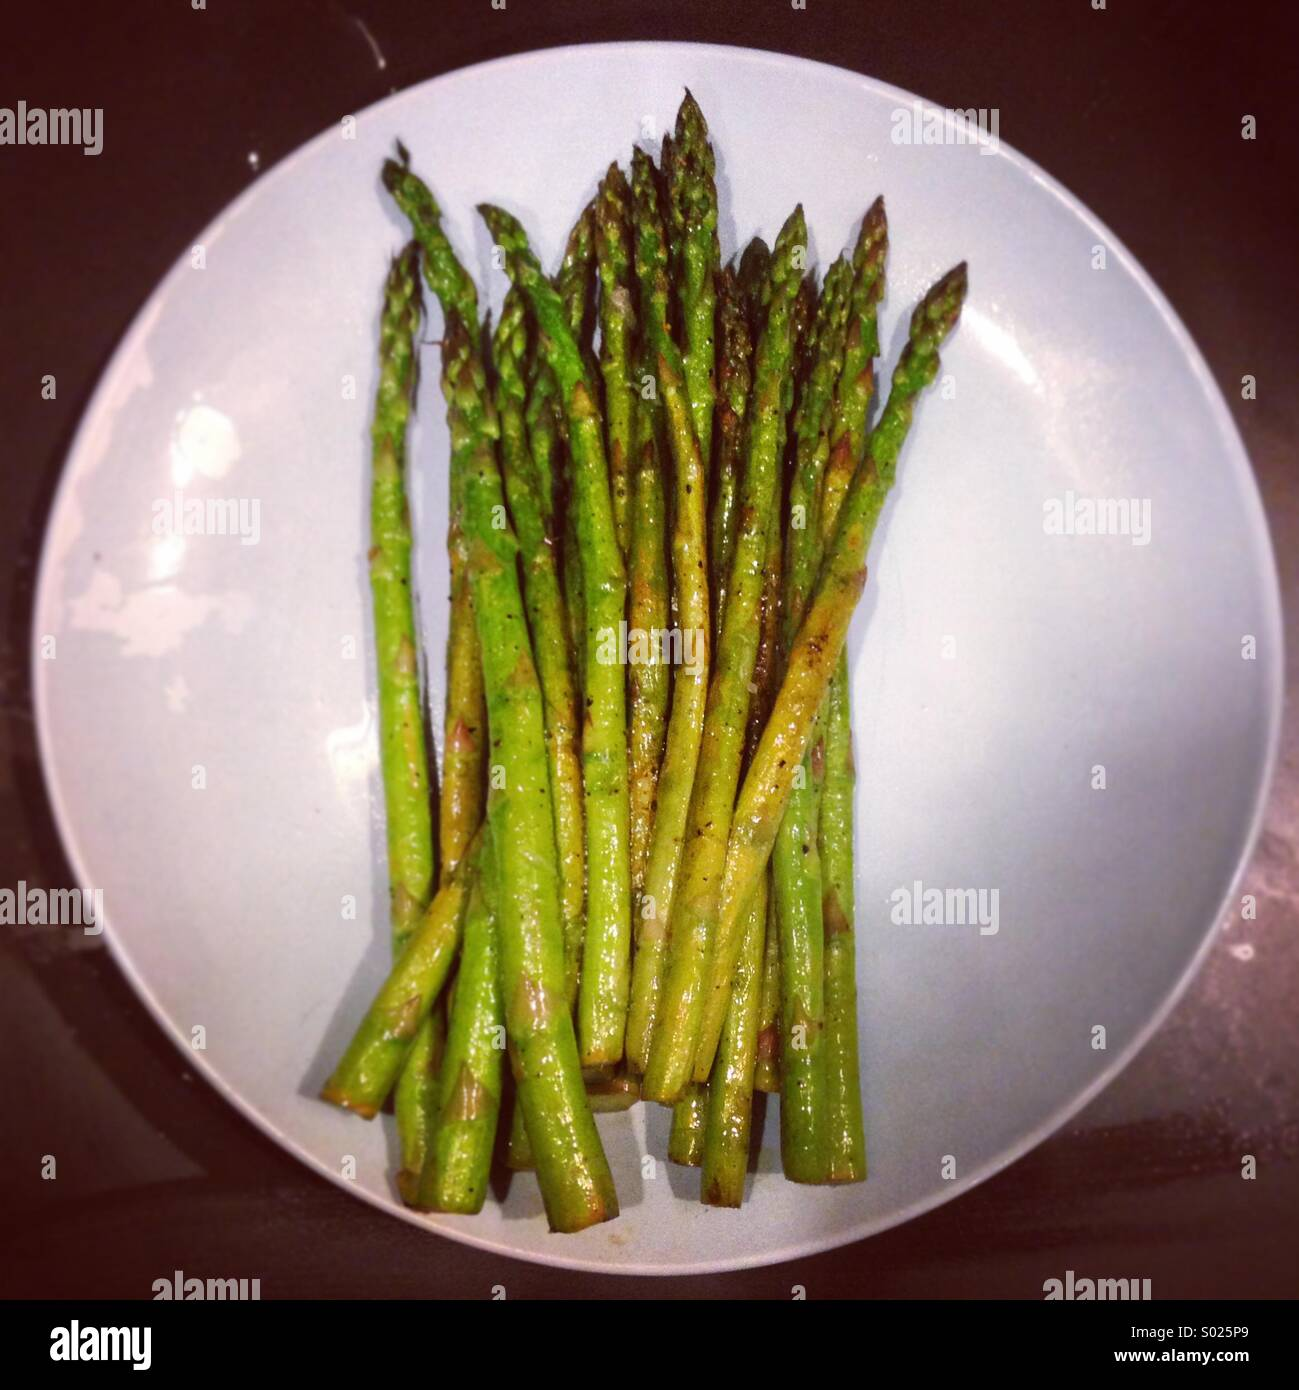 Grilled asparagus - Stock Image